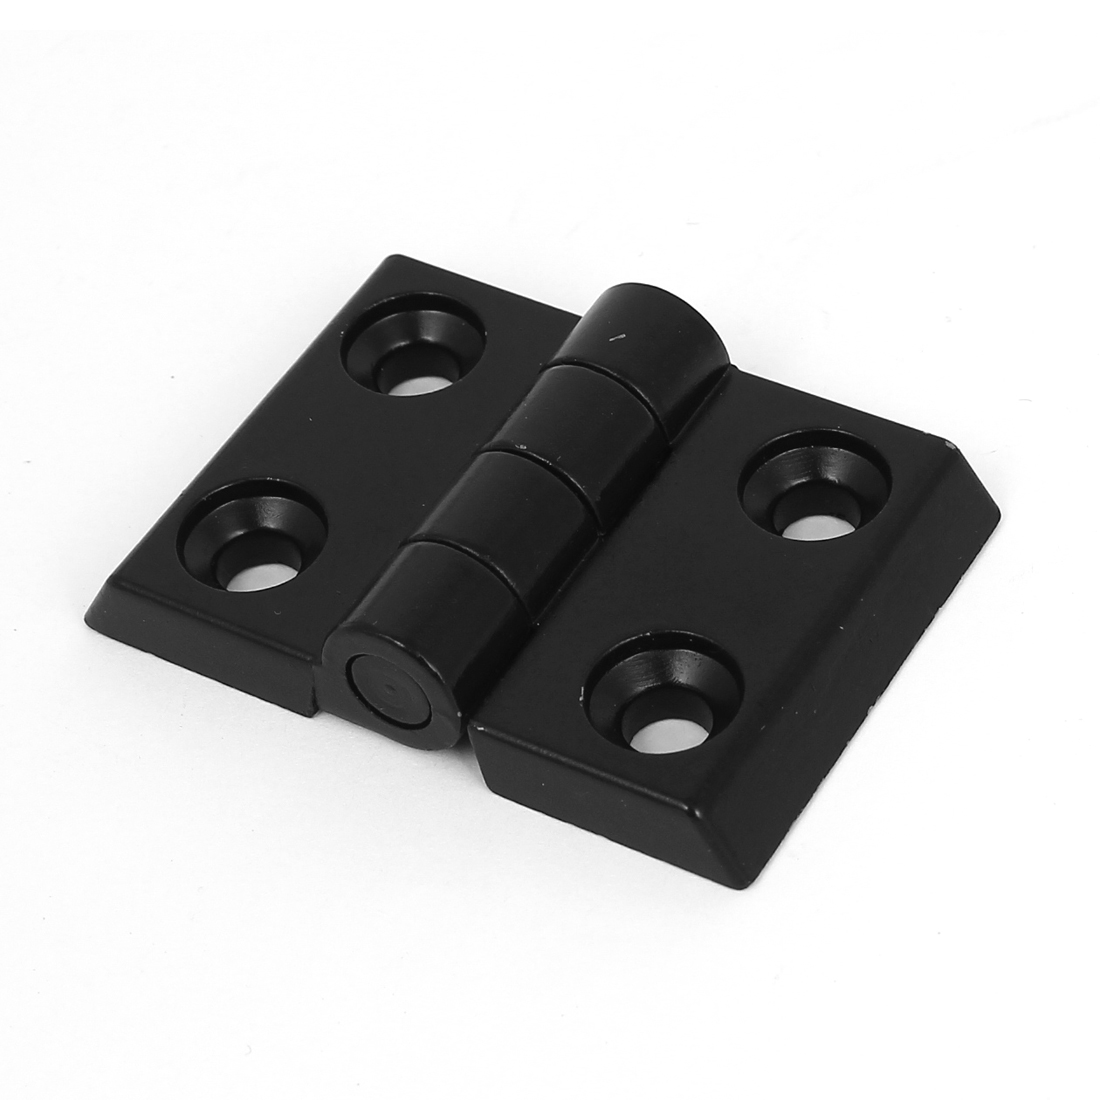 40mm x 25mm 2 Leaves Reinforced Aluminum Door Bearing Butt Hinge Black